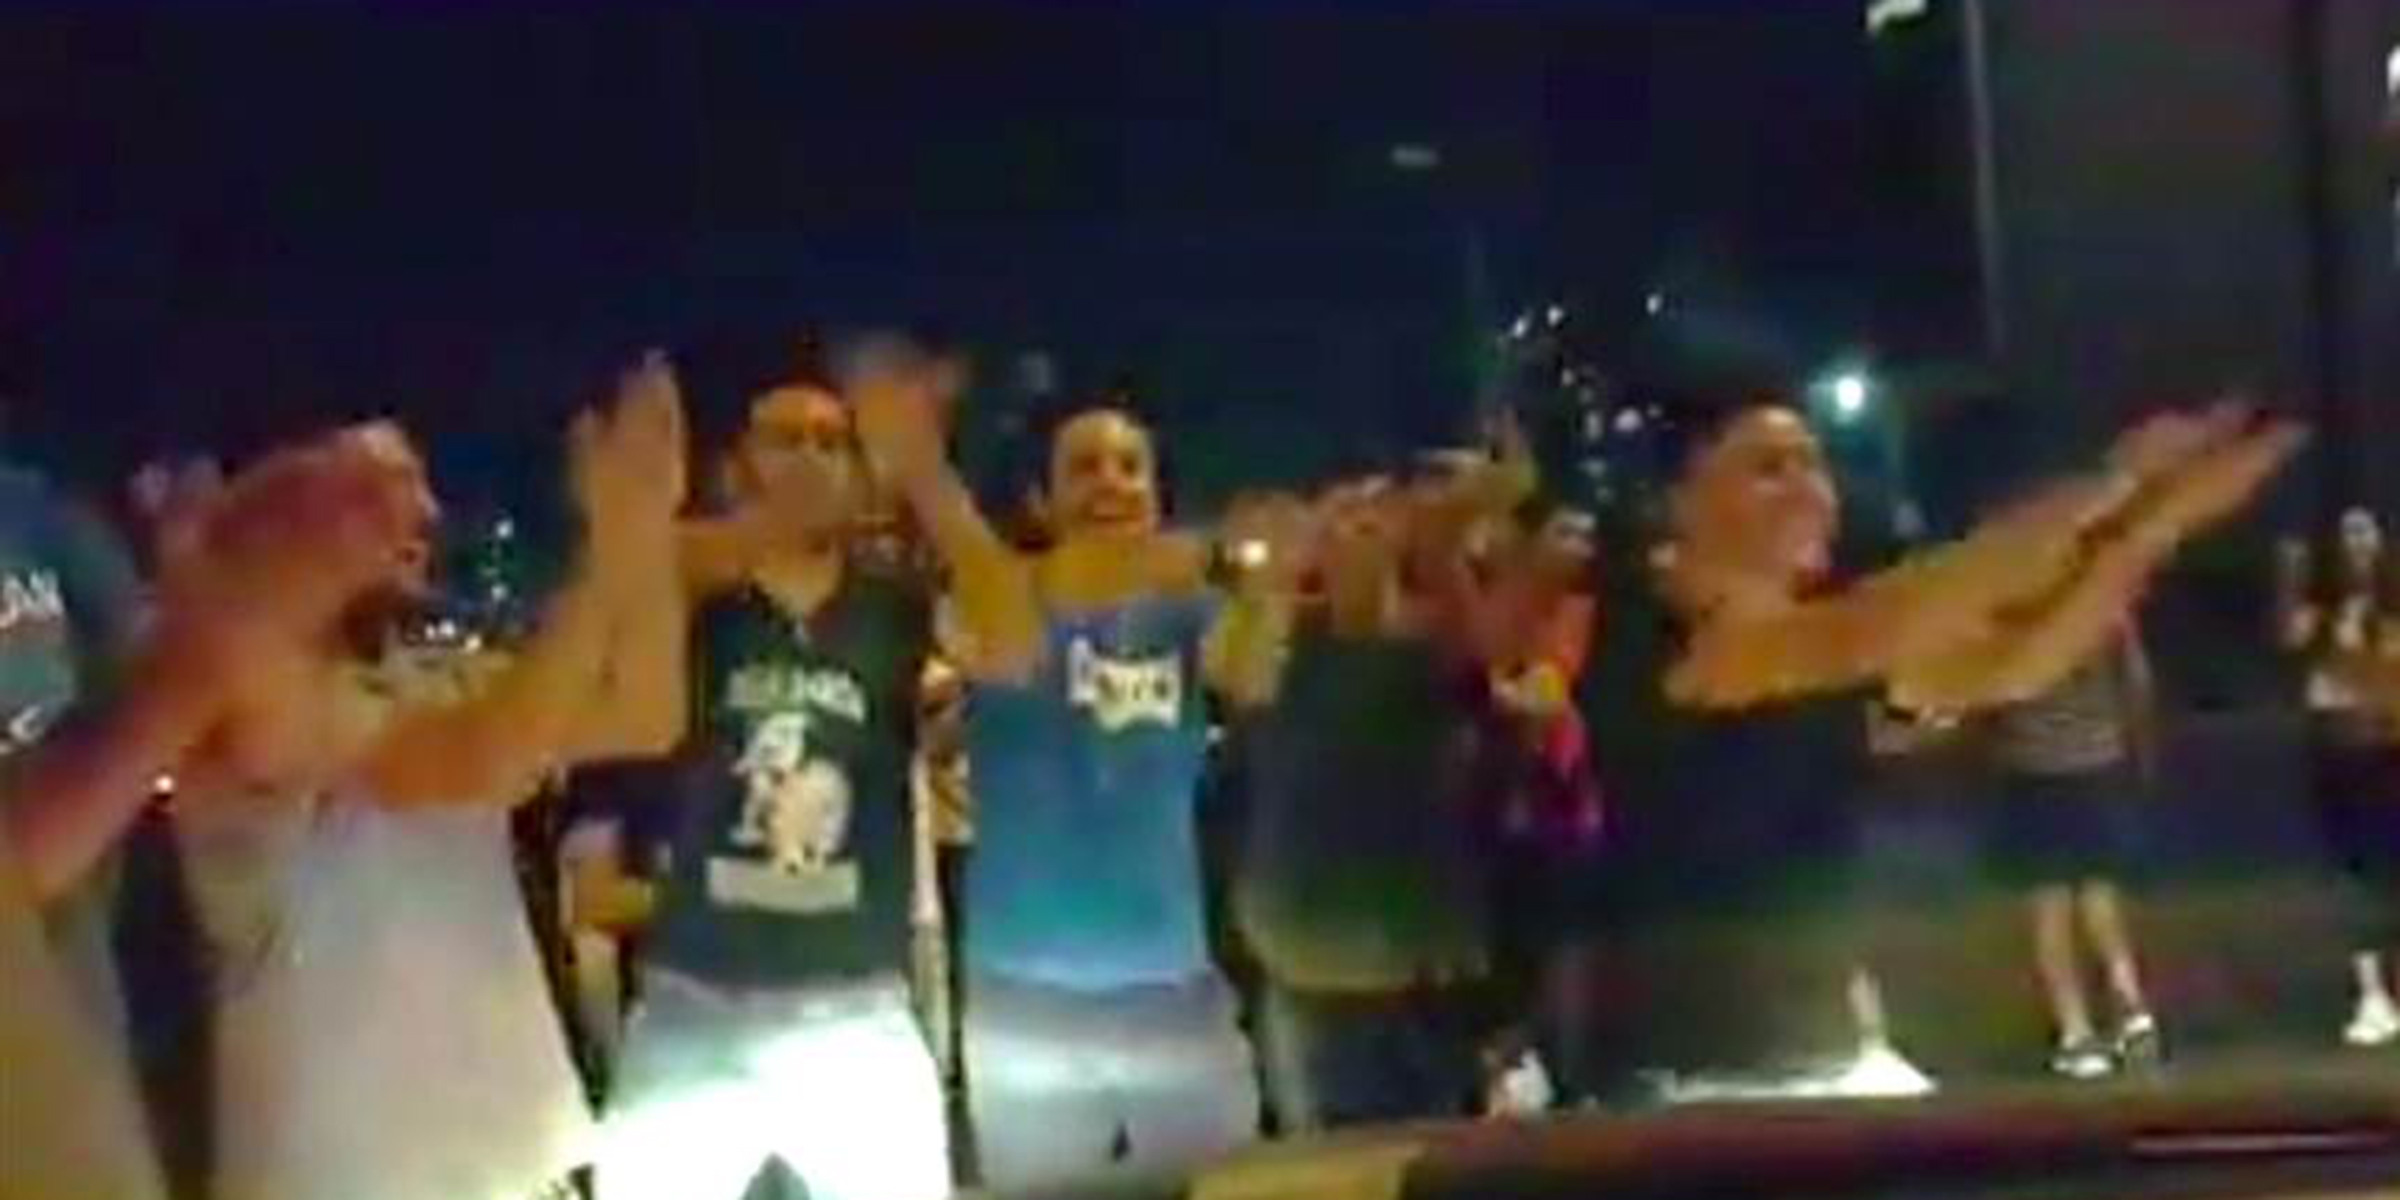 Lebanon protesters sing 'Baby Shark' to soothe a toddler